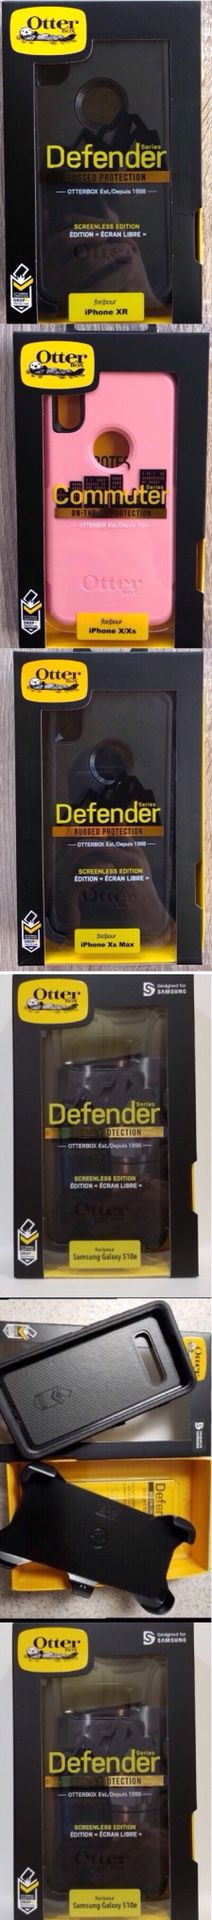 OtterBox Defender series Case brand new otter box fits Samsung Galaxy - S9 - S10 E plus + Edge - 8 - 9 & IPhone 6 -7 - 8 - plus - X -XR-Xs Max for Sale in Whittier, CA